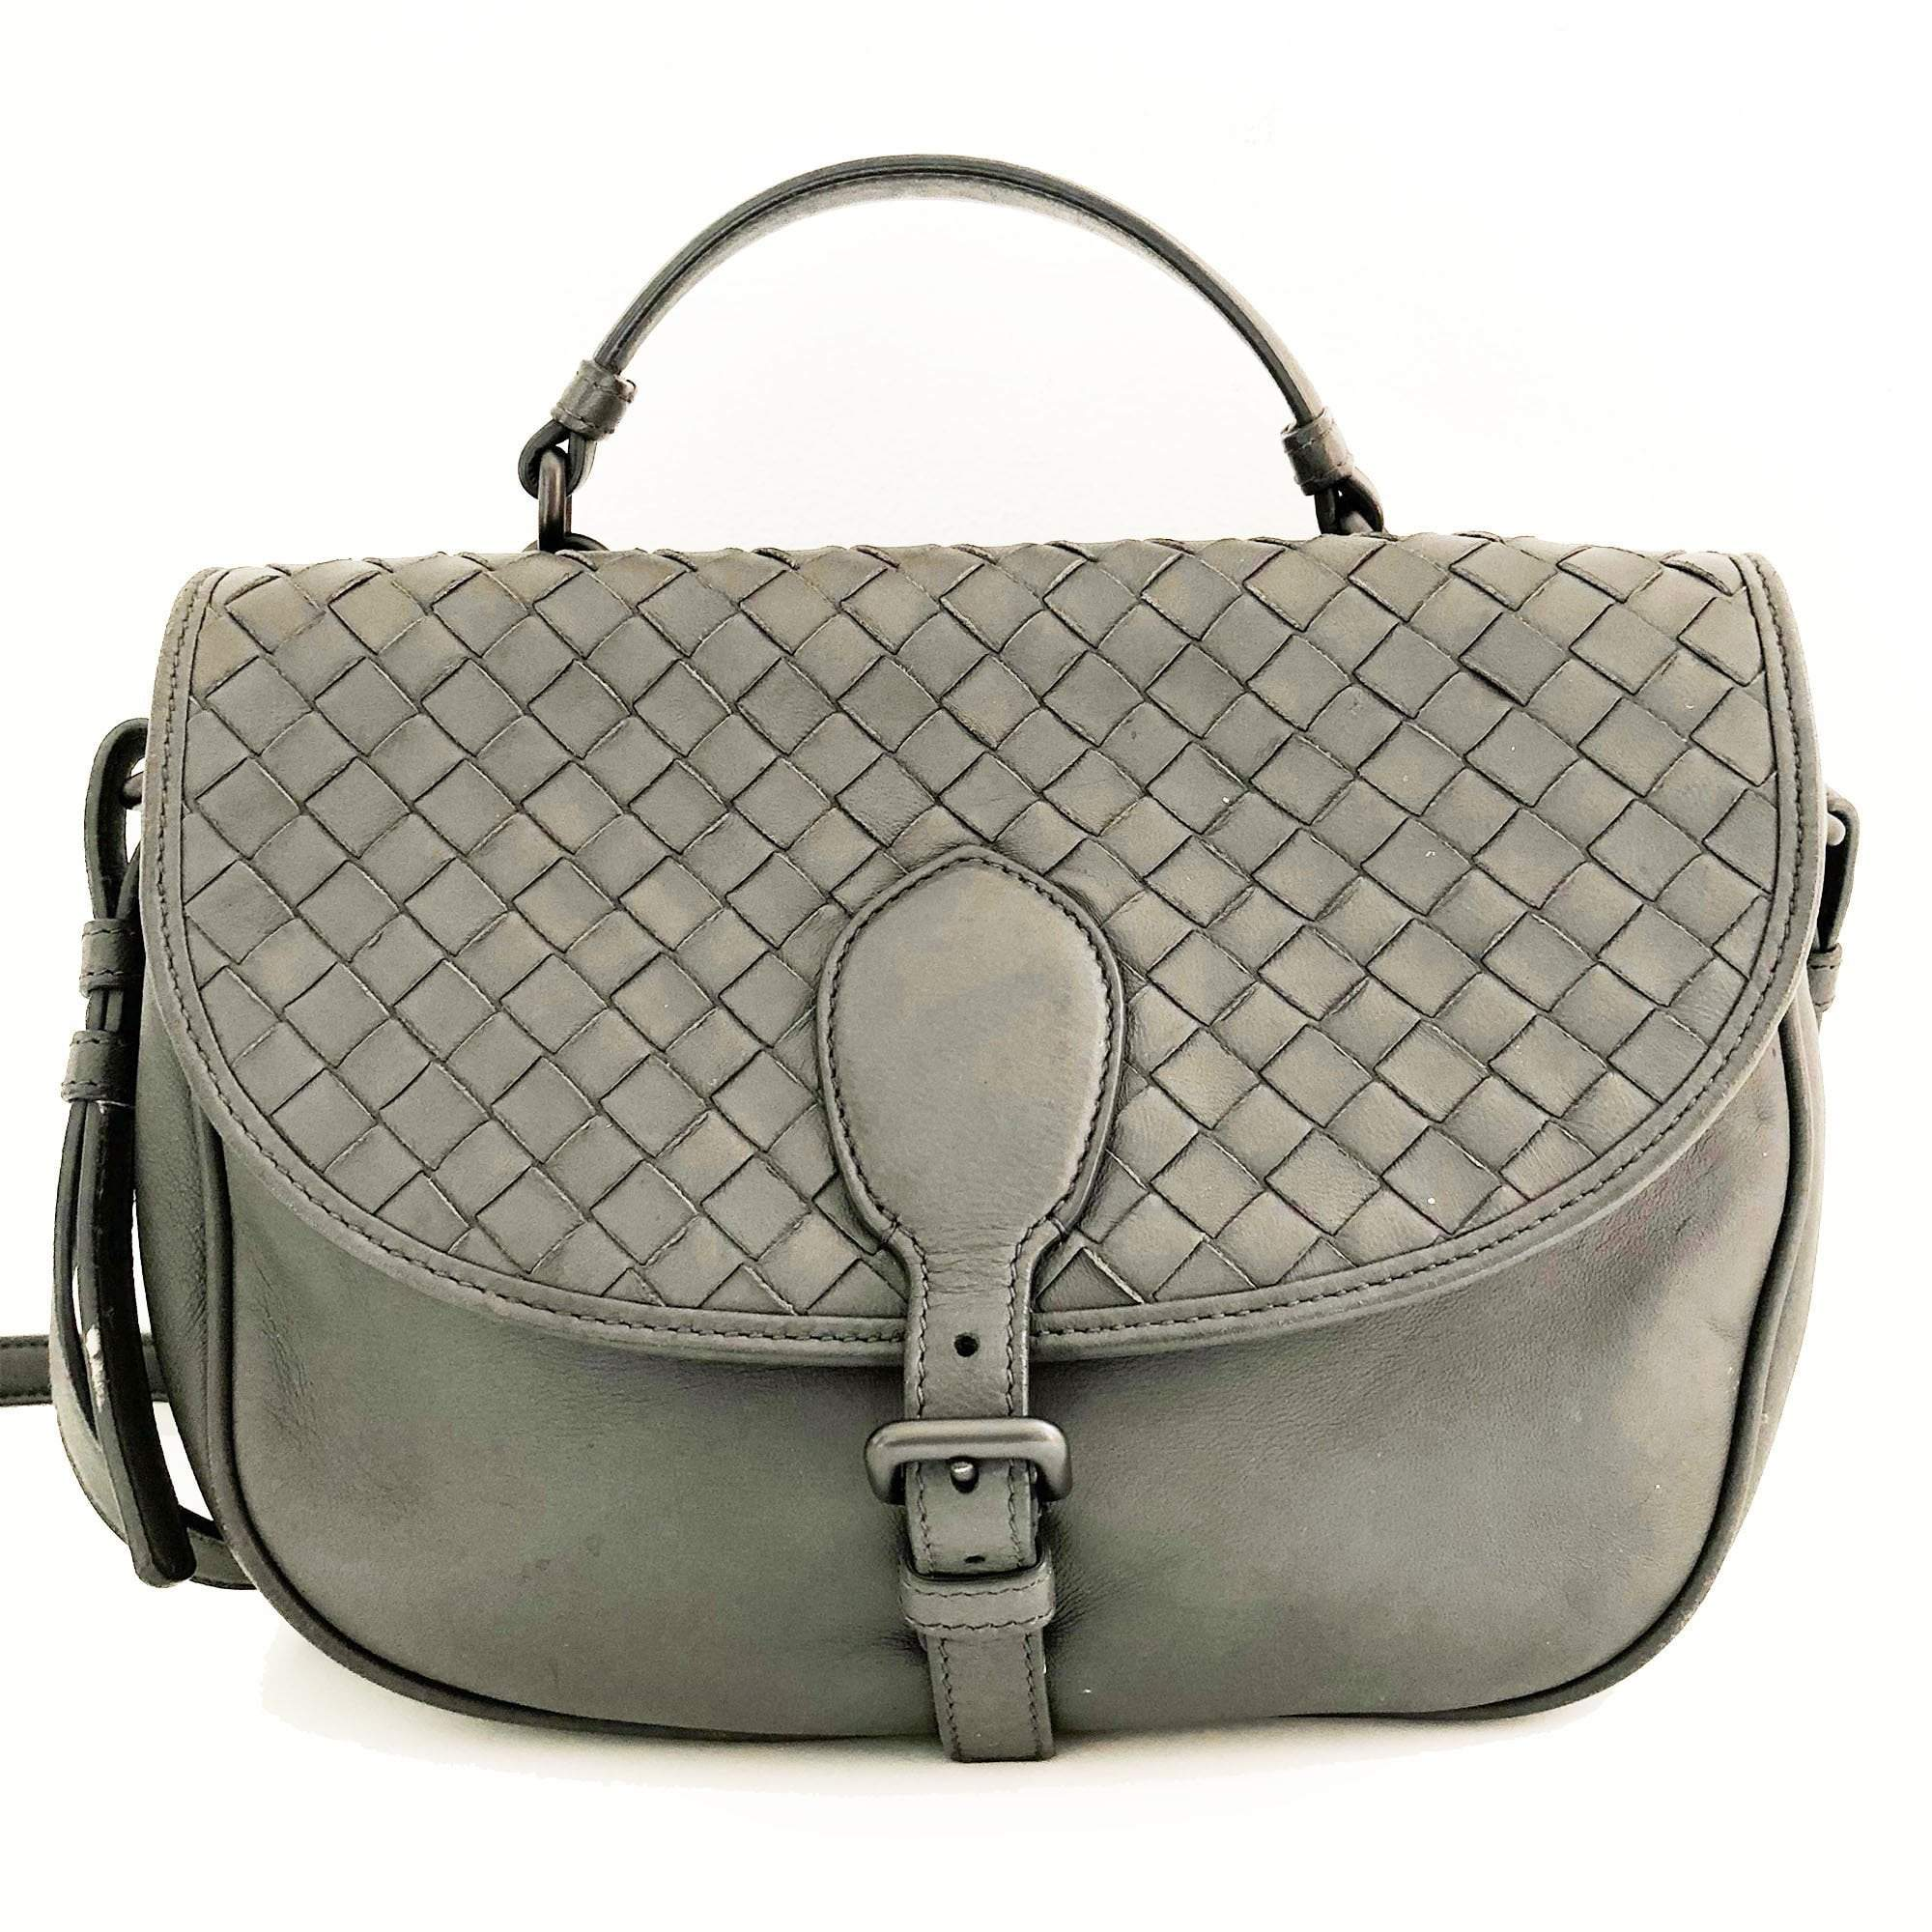 6f611bf9780d Bottega Veneta Grey Satchel Crossbody Bag – Garderobe